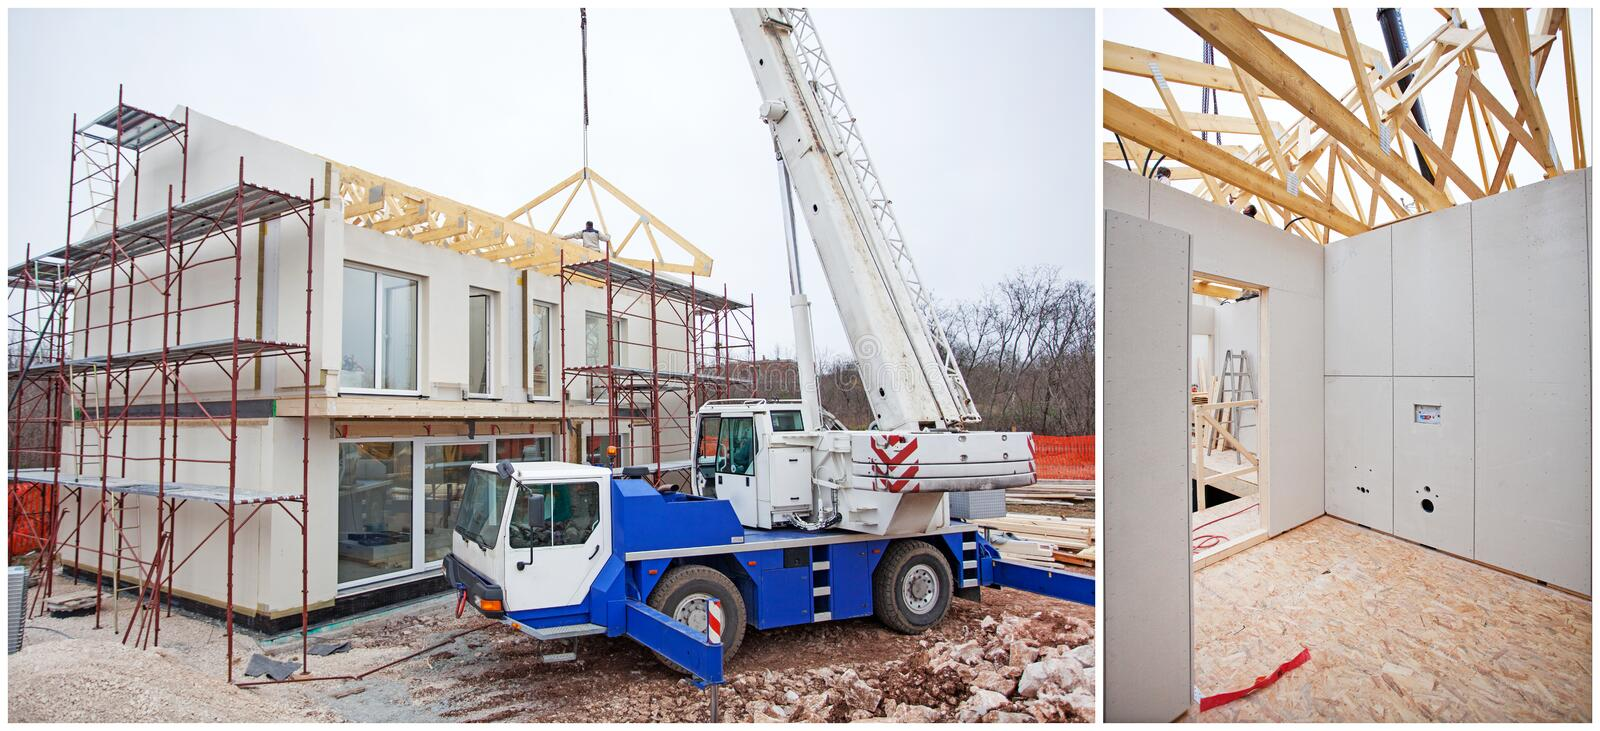 Prefabricated house building royalty free stock images